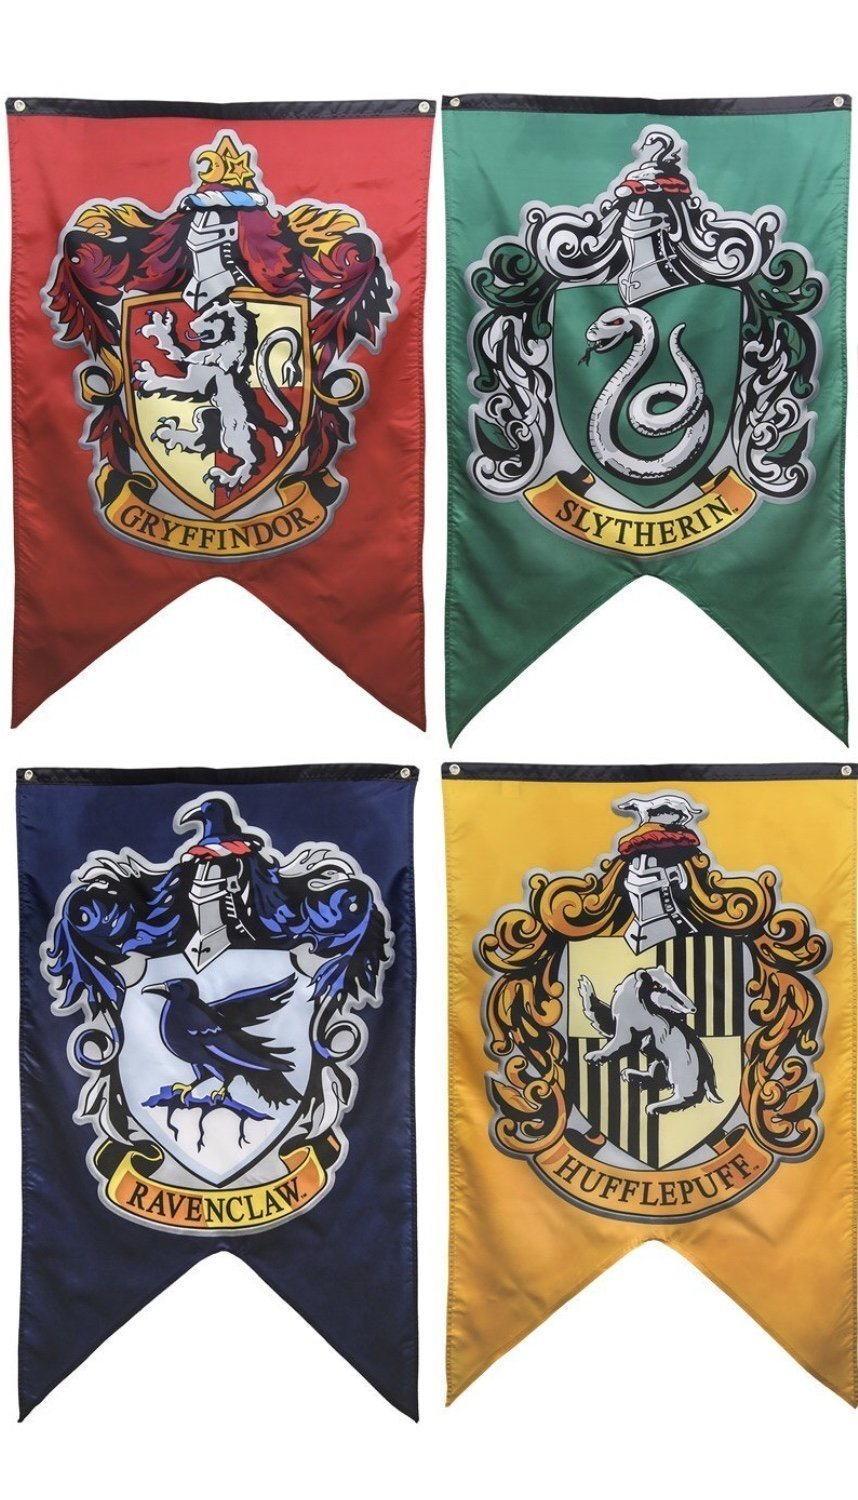 Harry Potter Hogwarts House Wall Banners: Gryffindor, Slytherin, Hufflepuff and Ravenclaw; Harry Potter Hogwarts House Flags by Easy Party